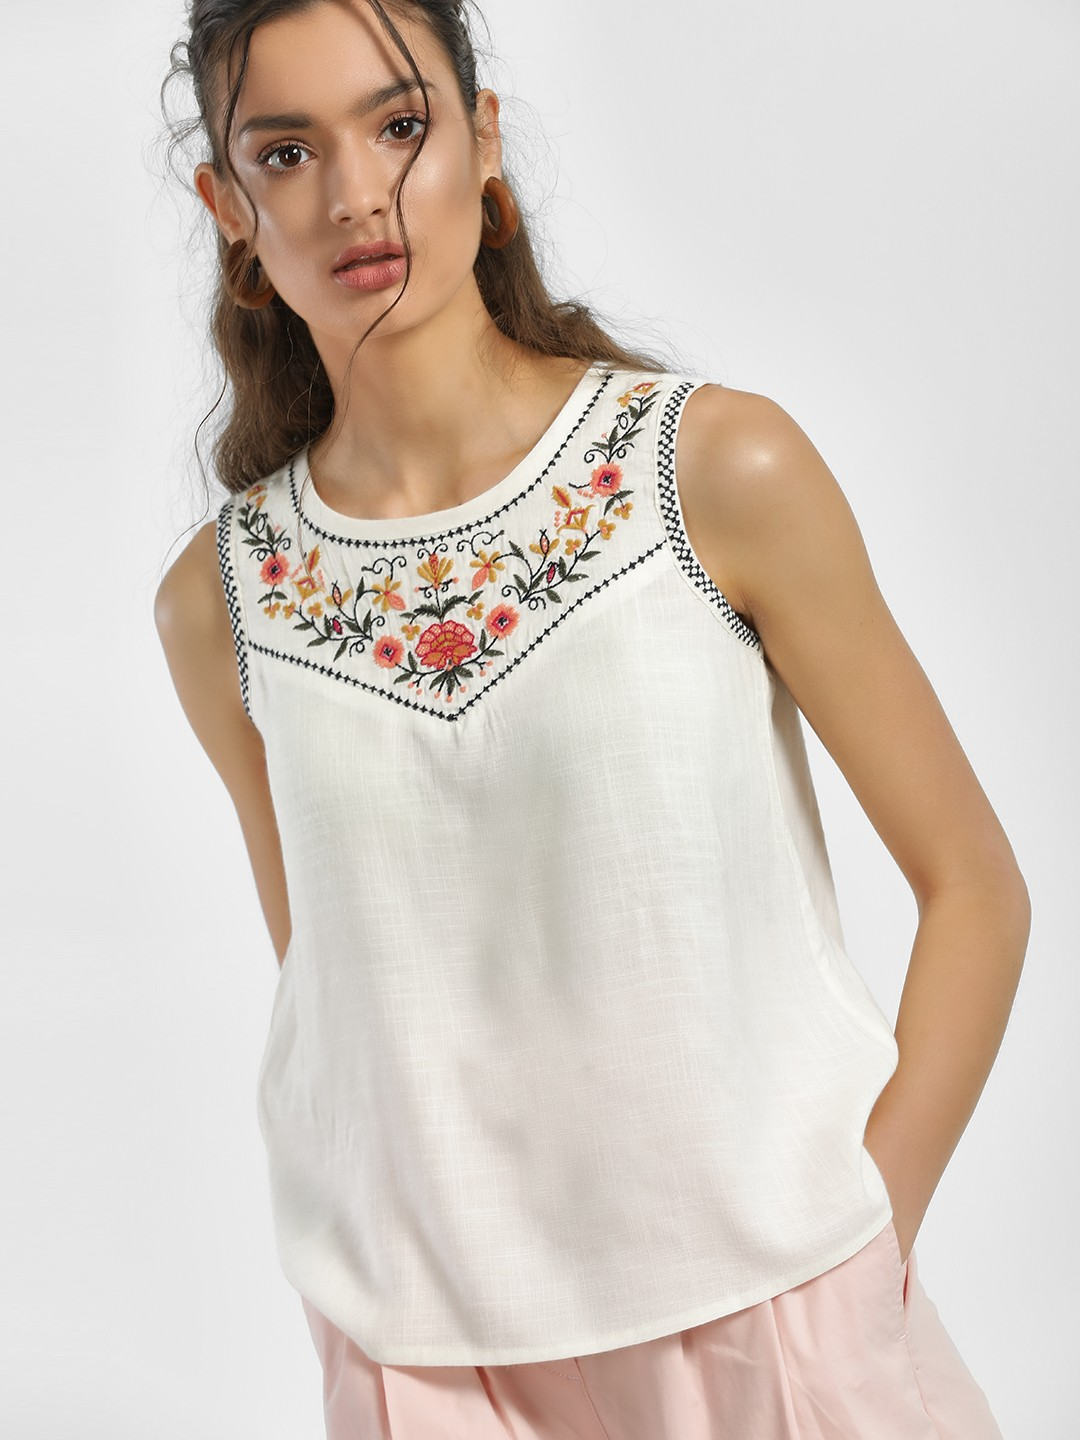 People Off White Floral Embroidered Sleeveless Blouse 1